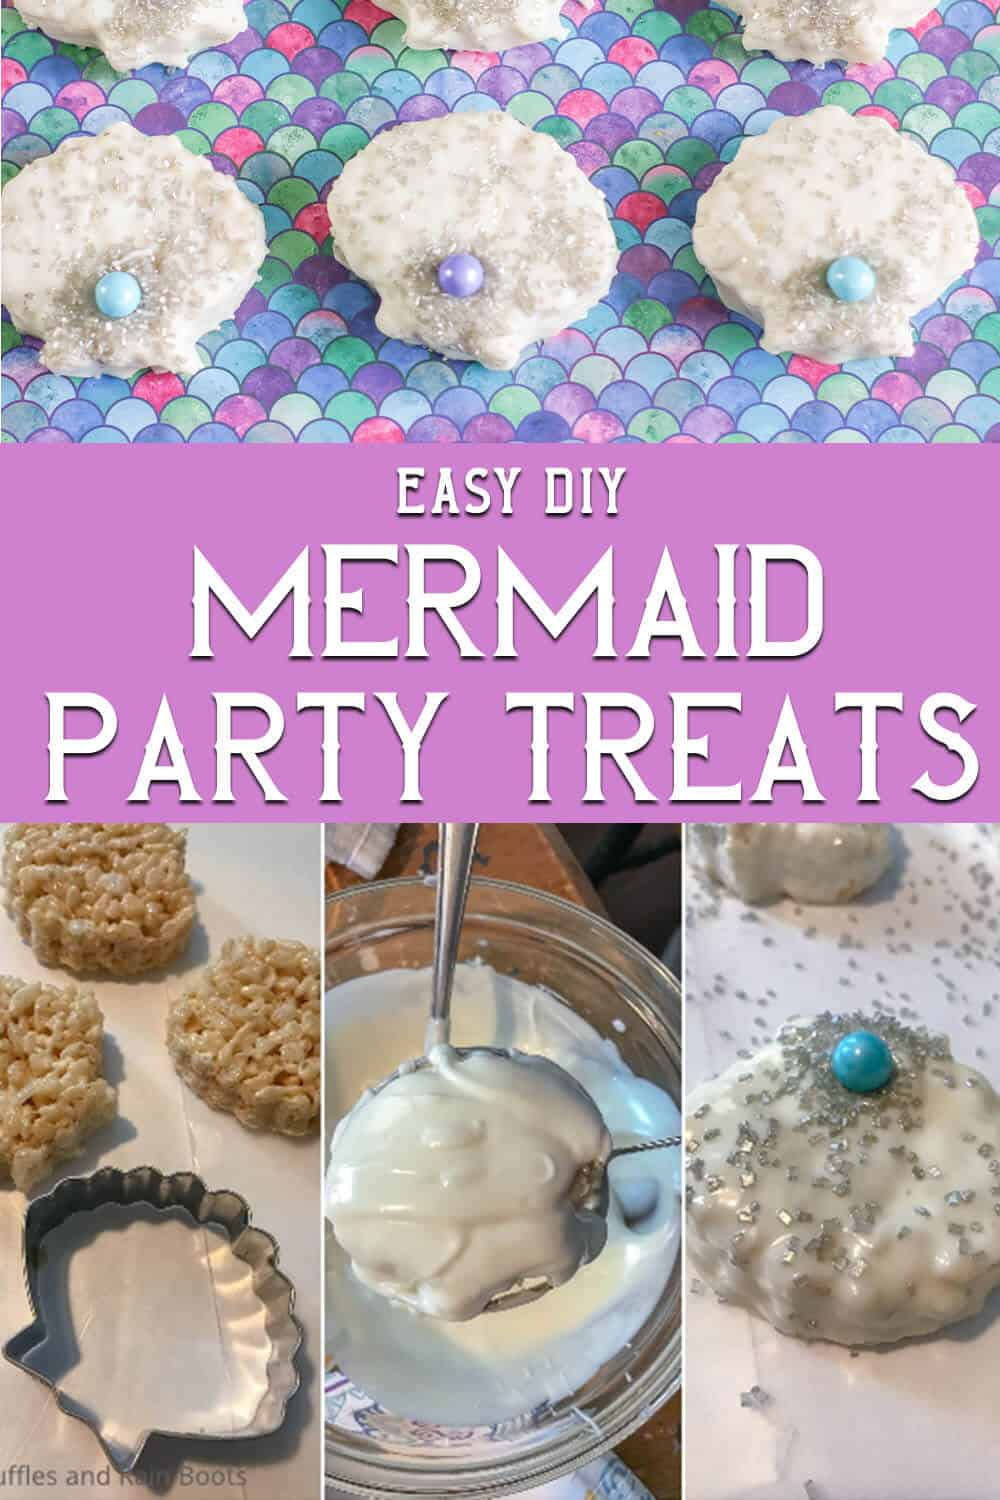 photo collage of easy mermaid rice krispies treats recipe with text which reads easy diy mermaid party treats